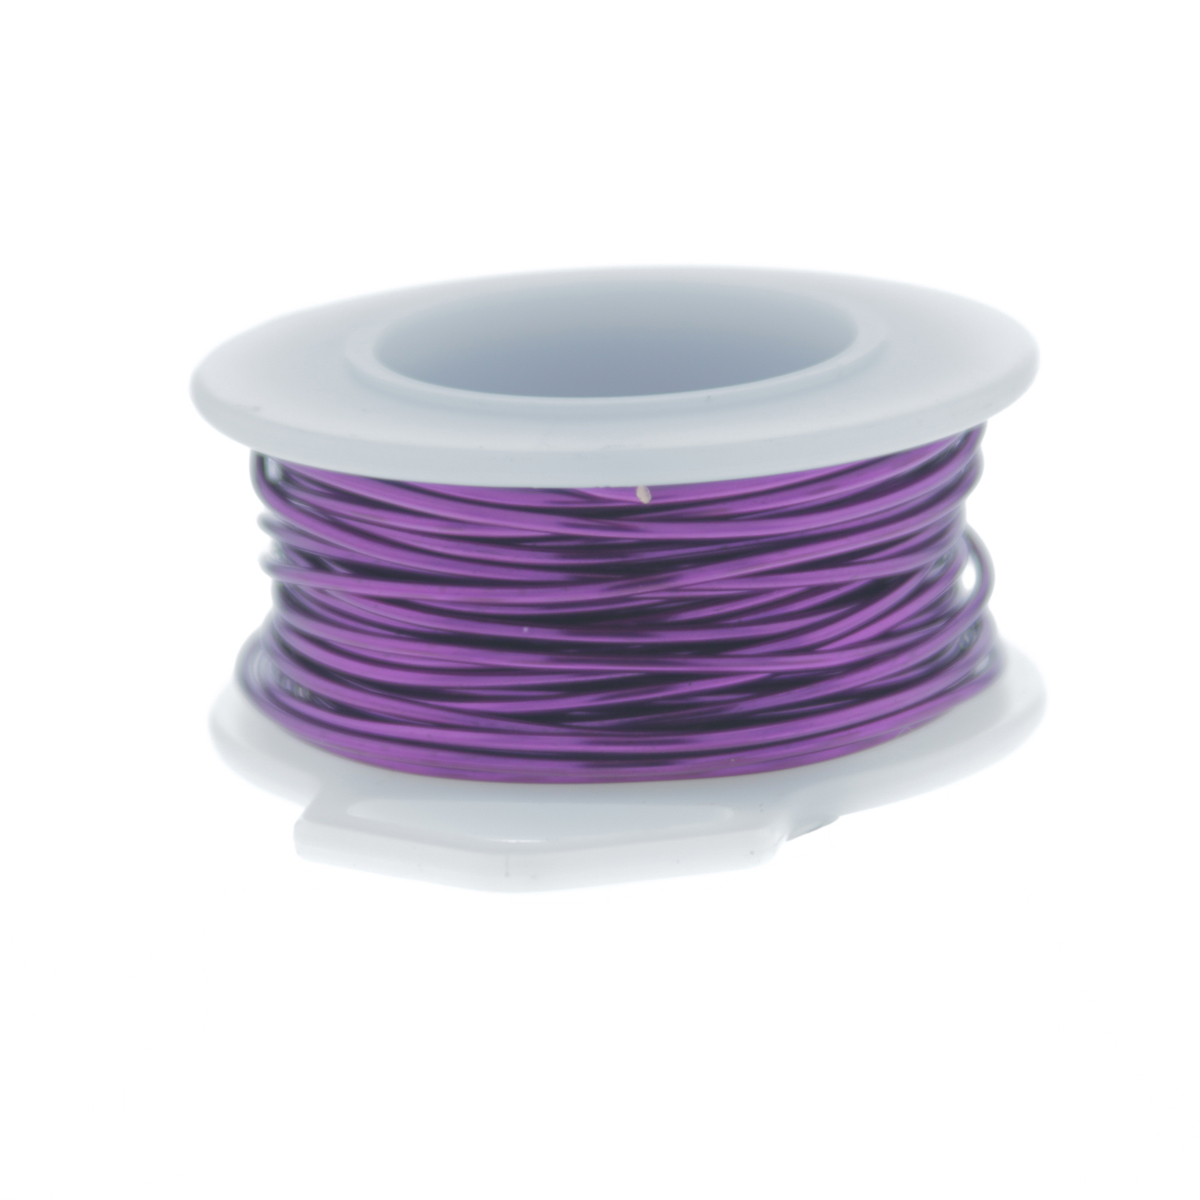 20 Gauge Round Silver Plated Amethyst Copper Craft Wire - 25 ft